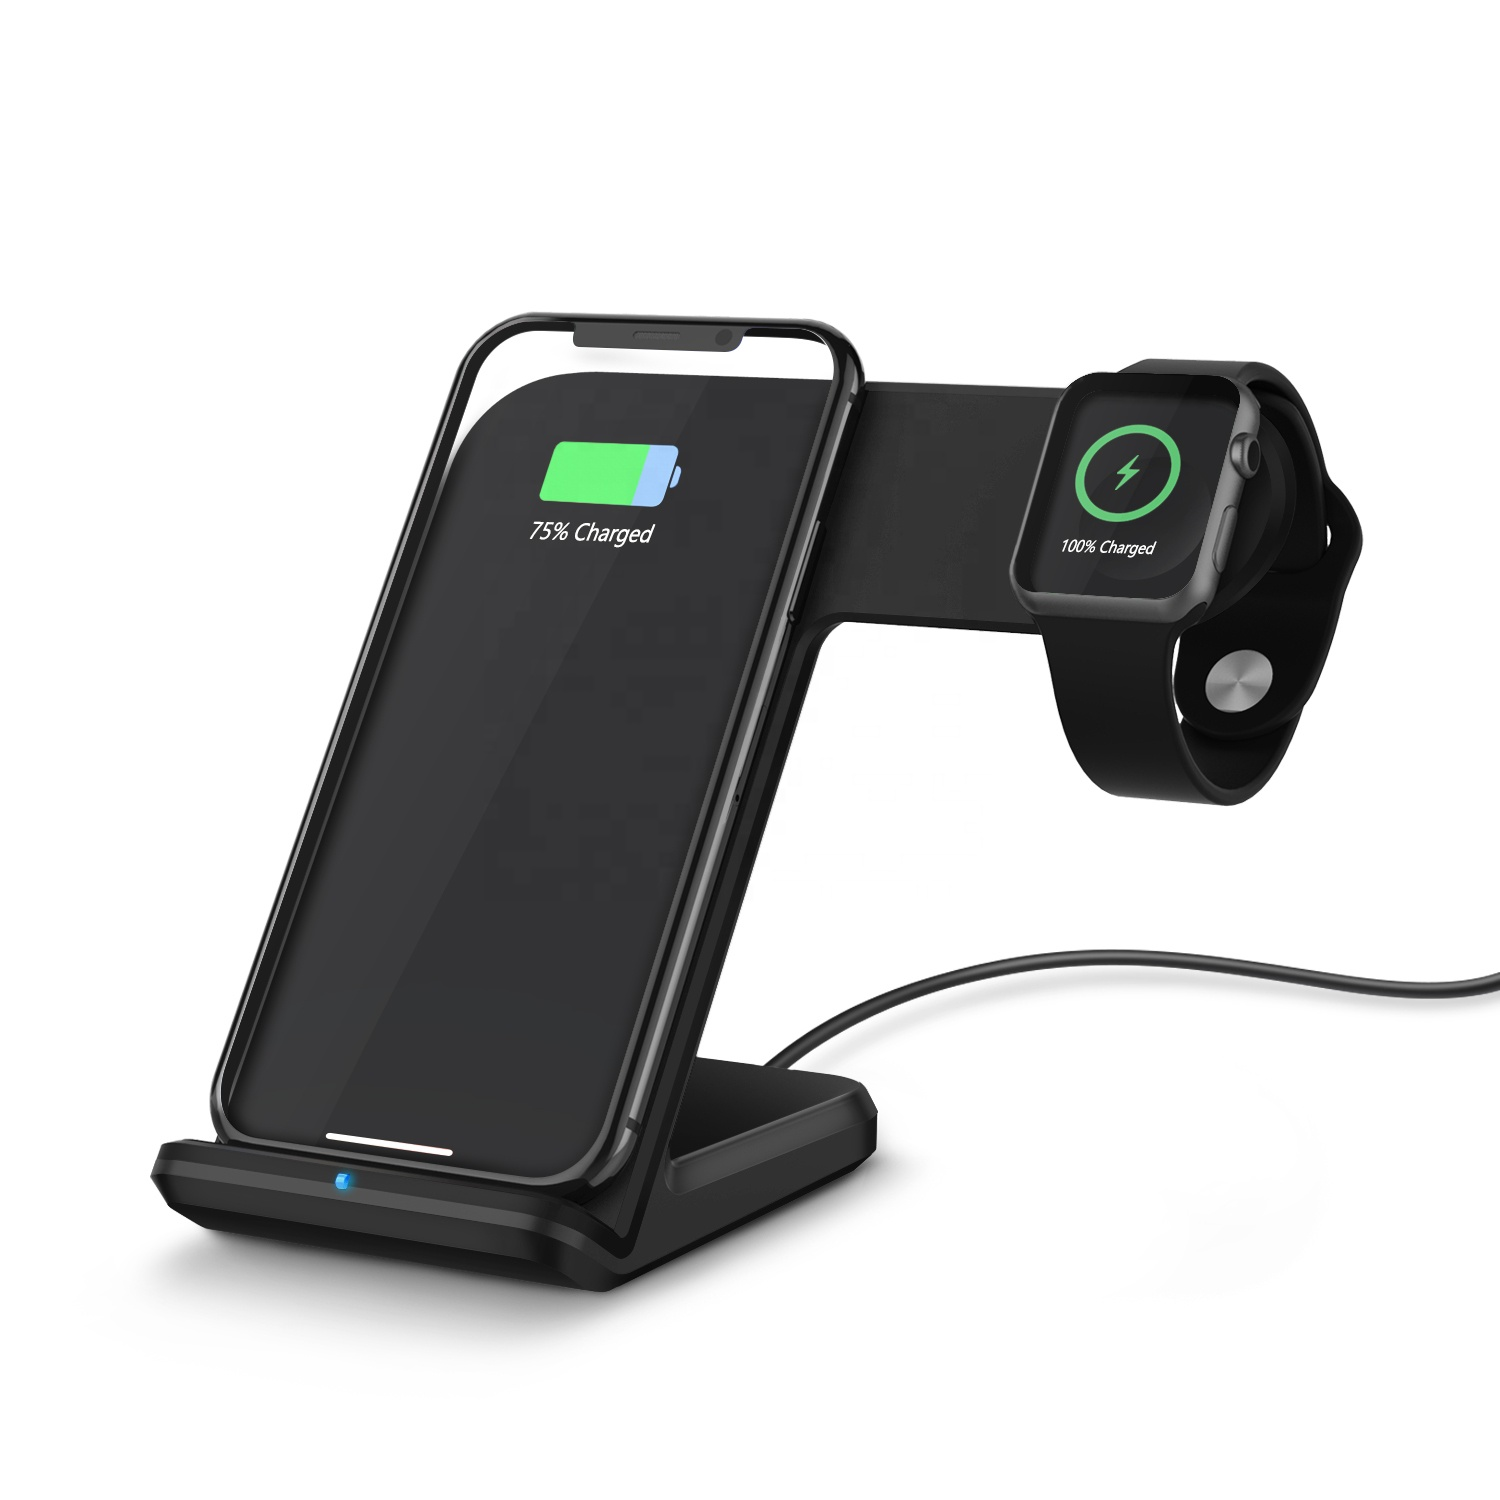 2 in 1 Fast Wireless Charging Stand with Magnetic iWatch Charging and Mobile Phone Wireless Charger for iPhone 11 Pro/XS Max/XR